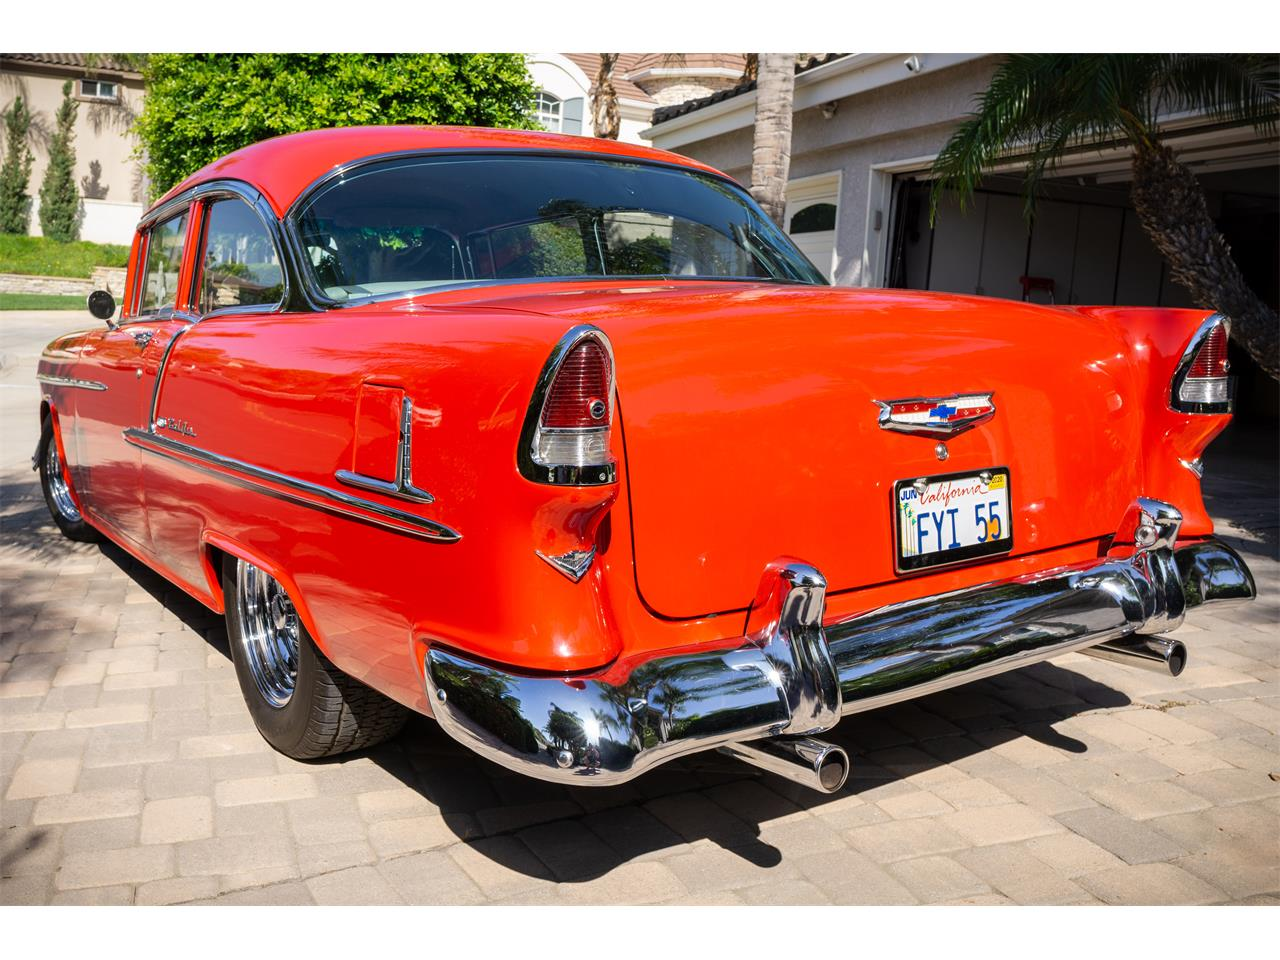 Large Picture of 1955 Chevrolet Bel Air - $47,500.00 Offered by a Private Seller - QIUE